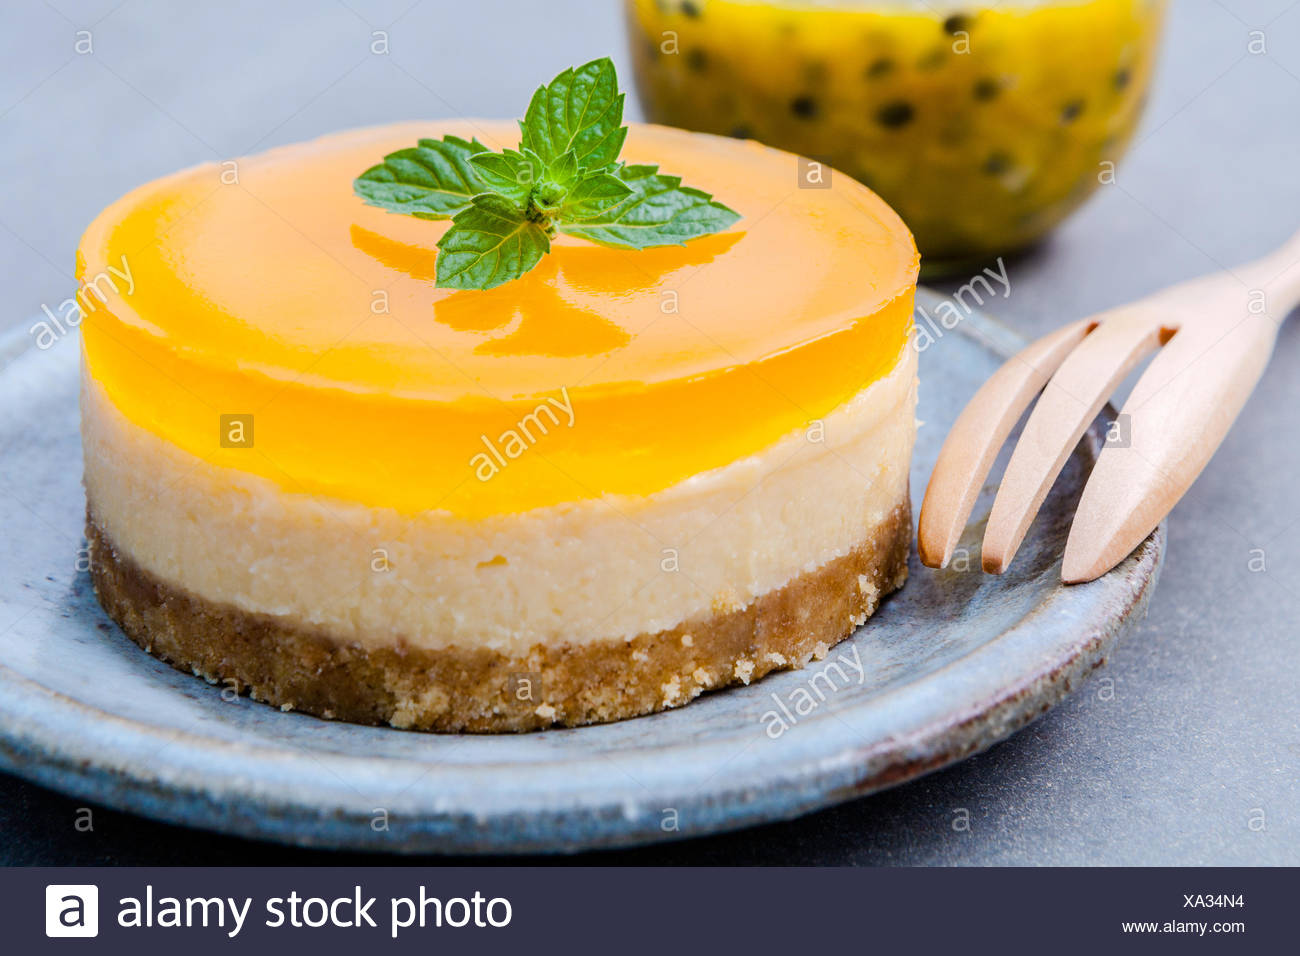 Passion fruit cheesecake with fresh mint leaves on dark backgrou - Stock Image